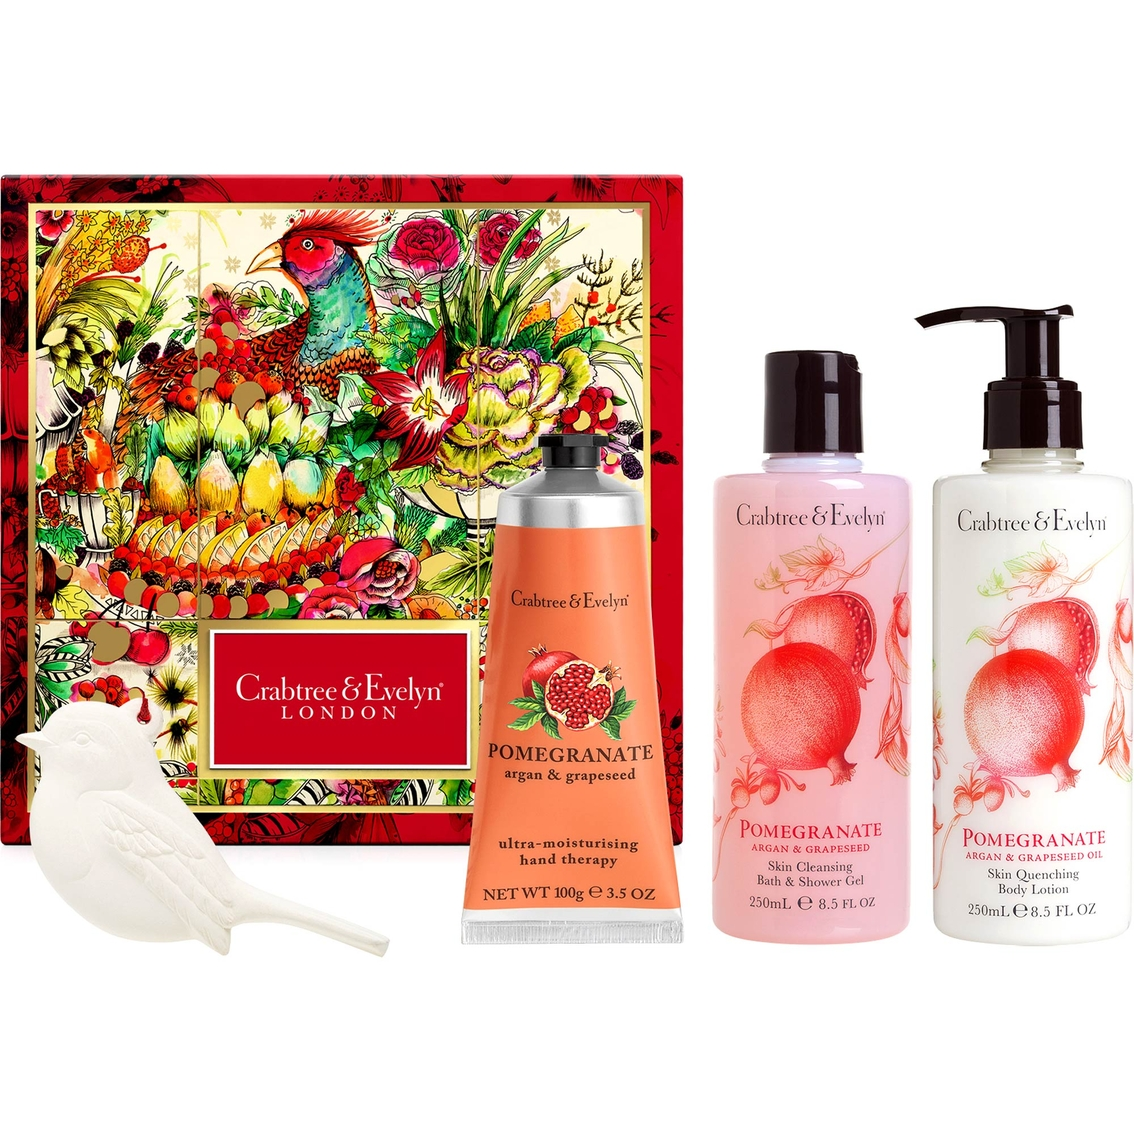 crabtree evelyn pomegranate argan and grapeseed deluxe gift set crabtree and evelyn. Black Bedroom Furniture Sets. Home Design Ideas